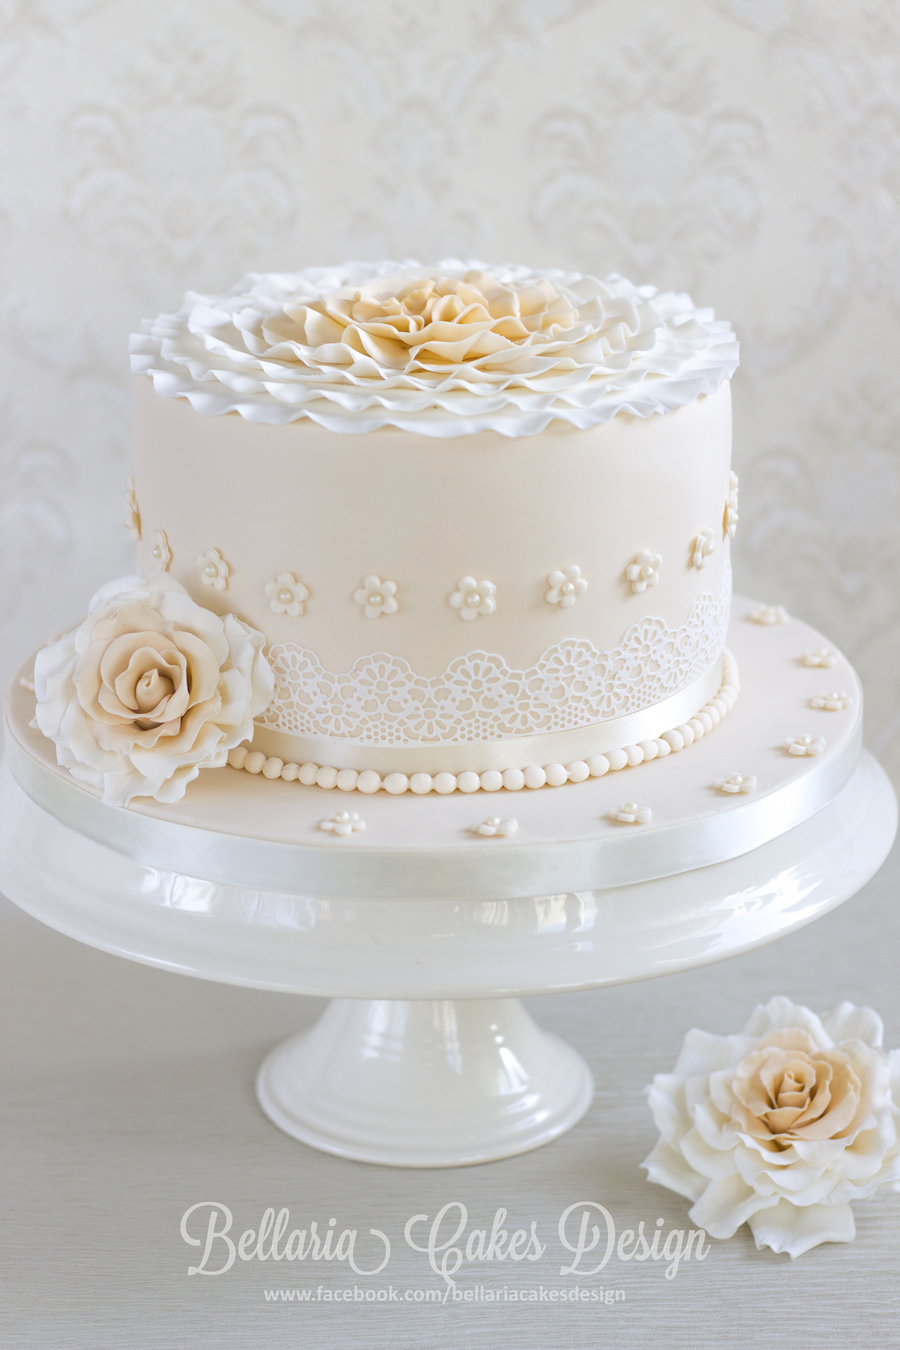 A 20th wedding anniversary cake for 50th wedding anniversary cake decoration ideas